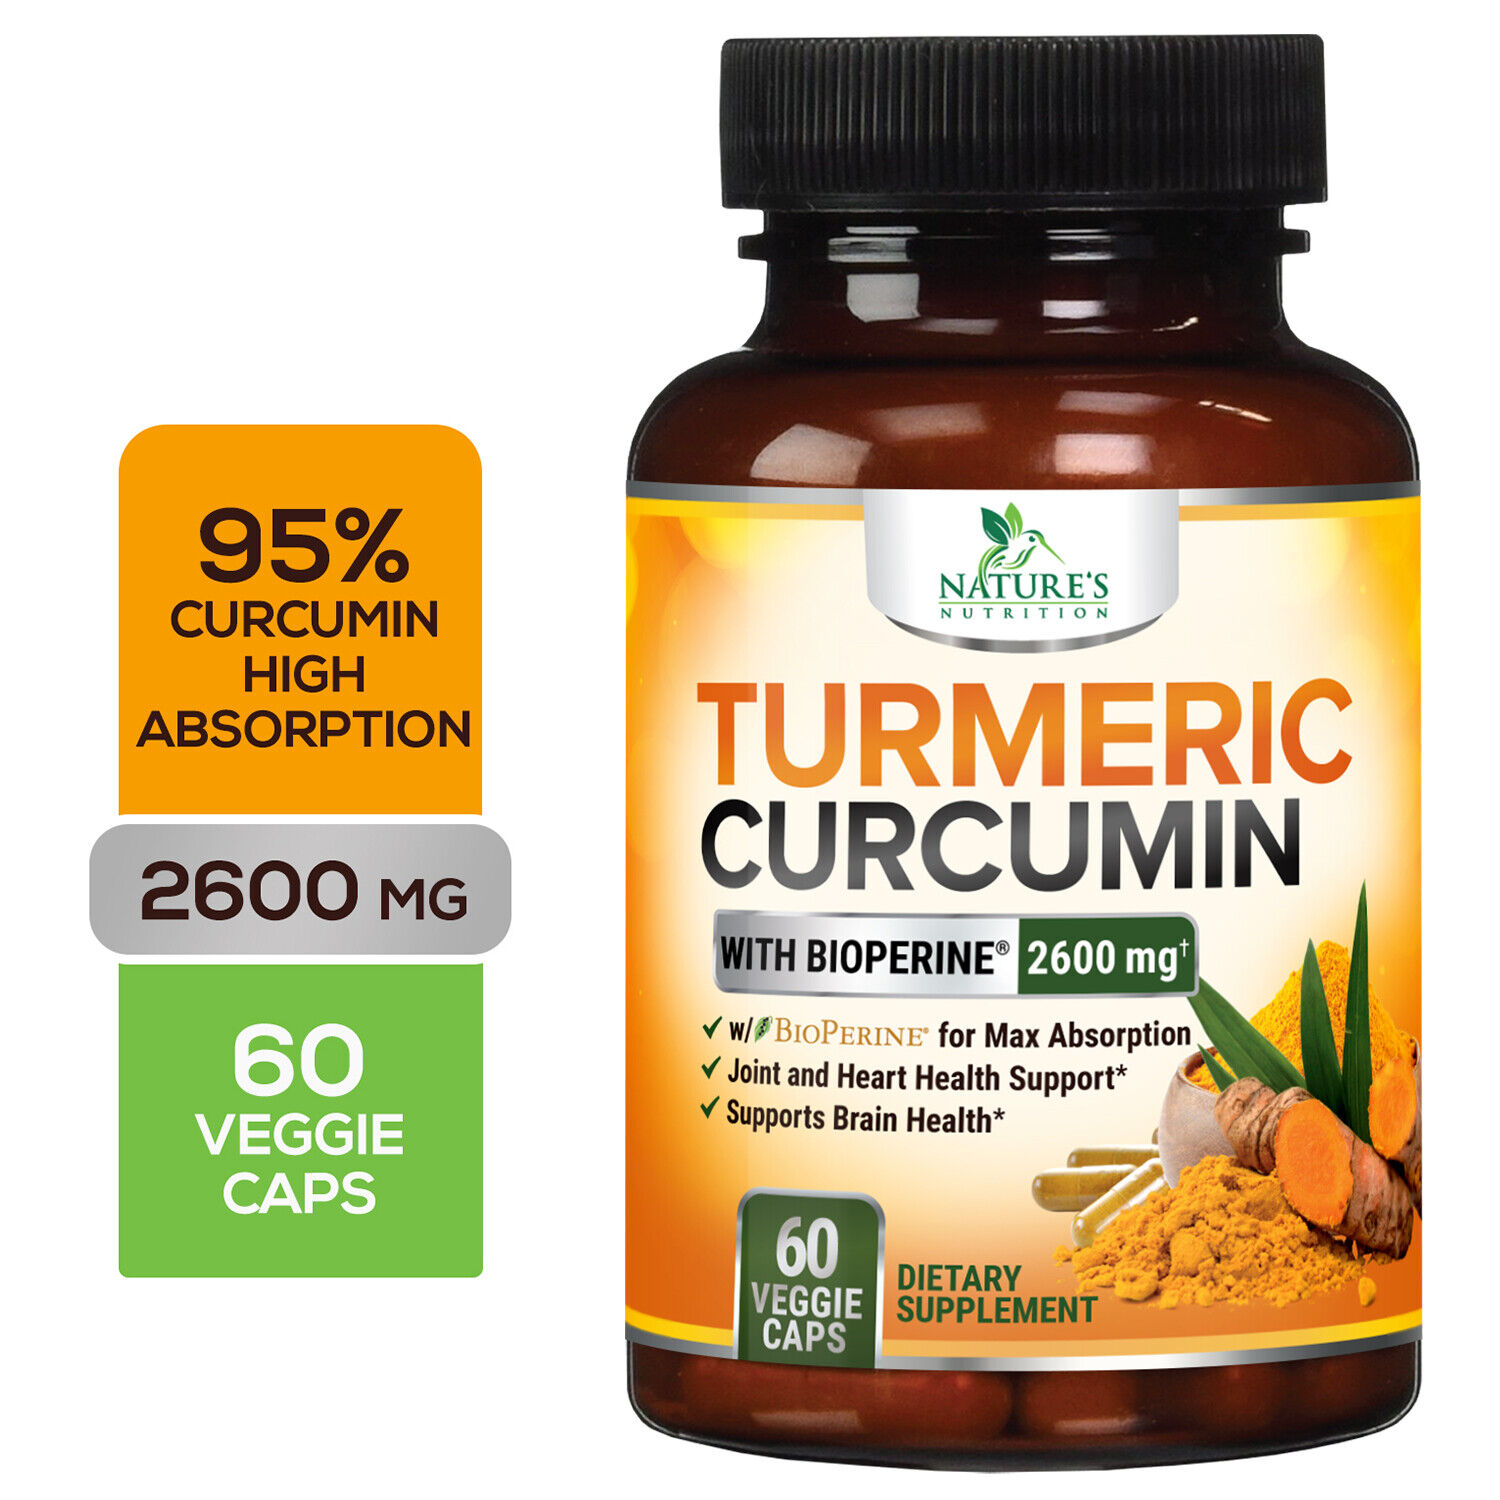 Turmeric Curcumin with Bioperine 2600mg High Absorption Trip